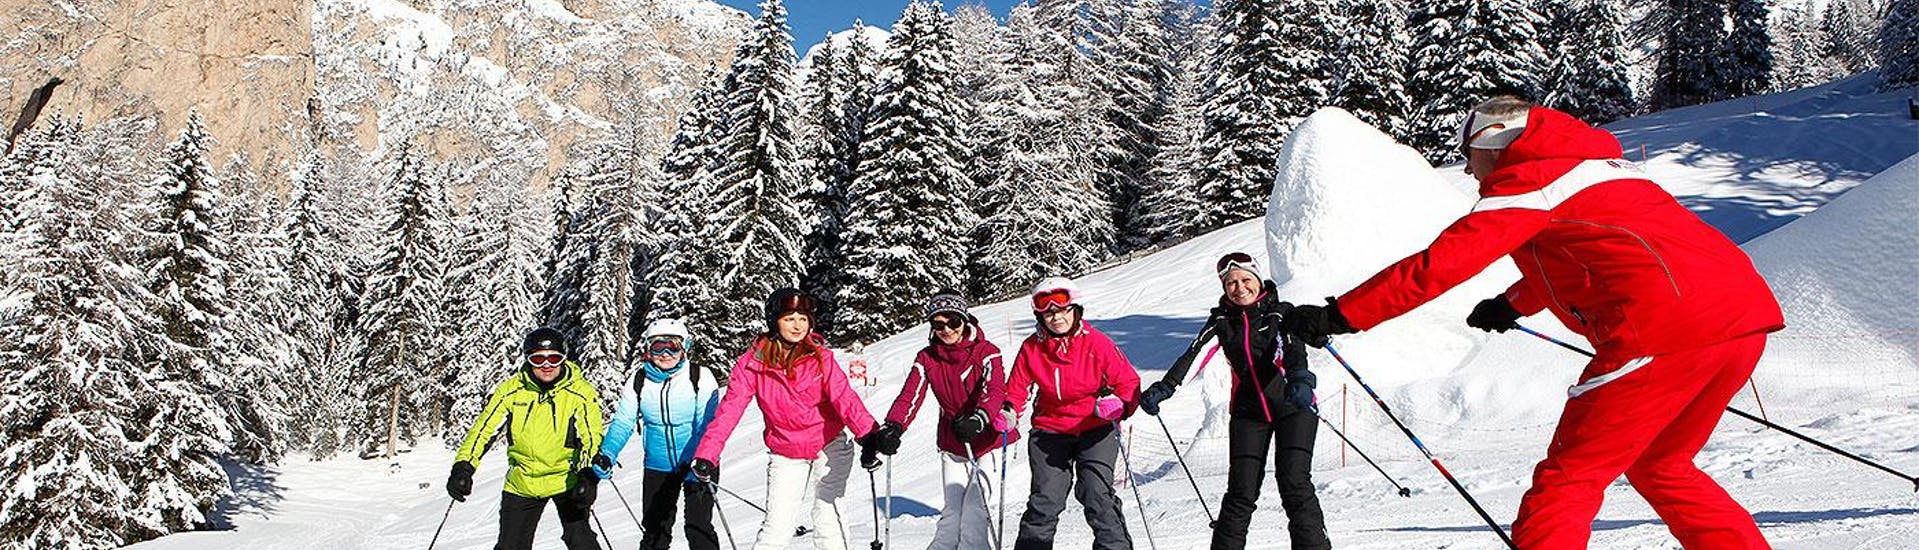 Adult Ski Lessons for Beginners with Ski and Snowboard School Selva Val Gardena - Hero image